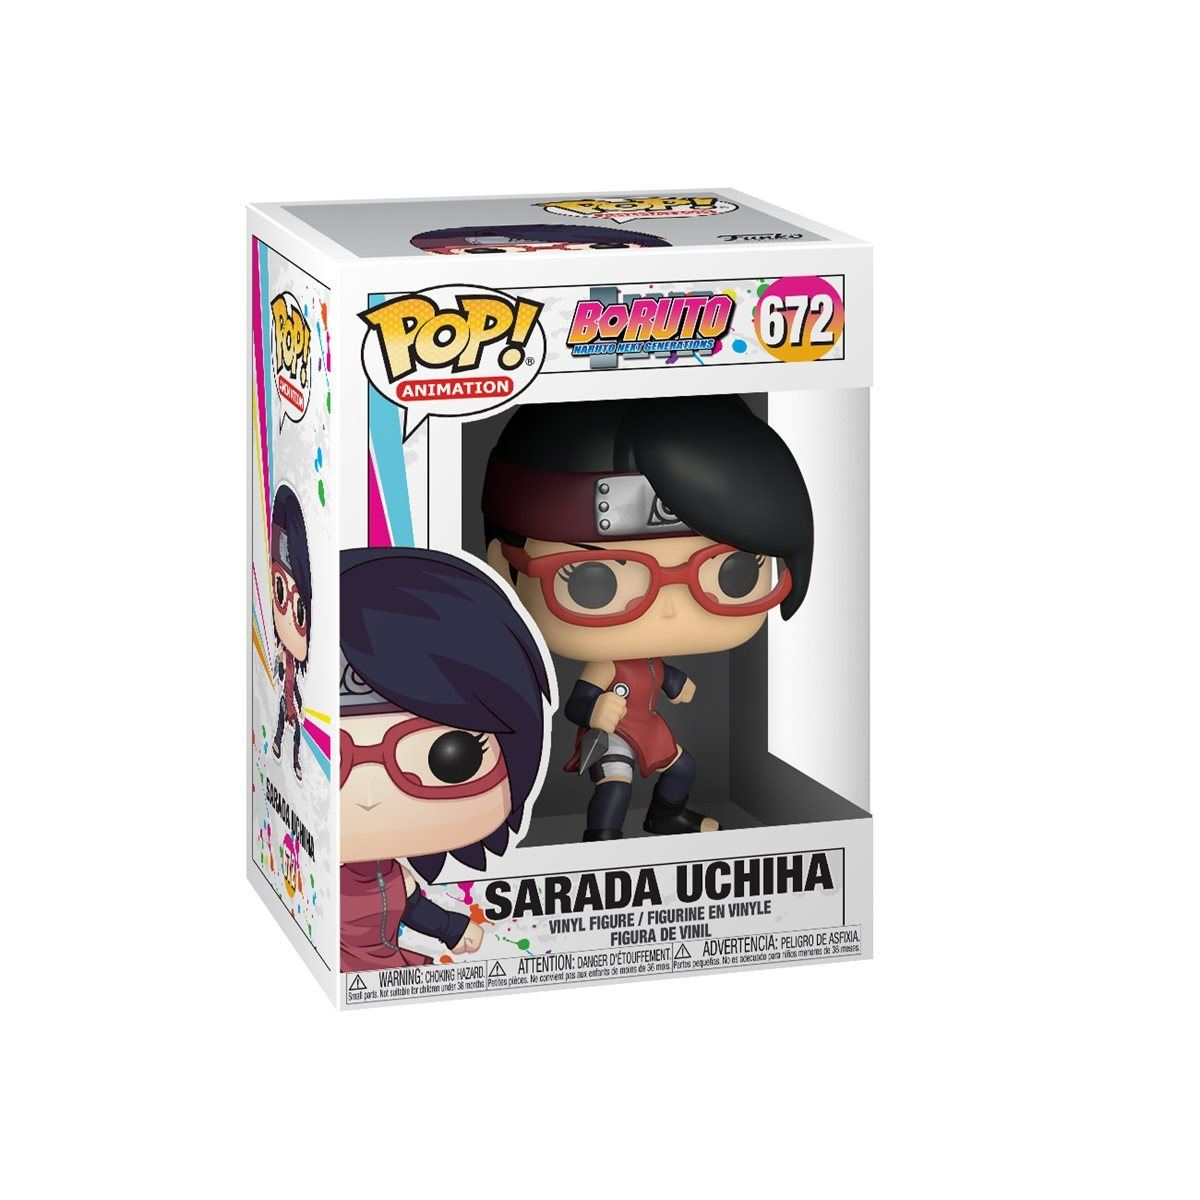 Sarada Uchiha #672 Boruto Funko POP! Animation Pop! Funko